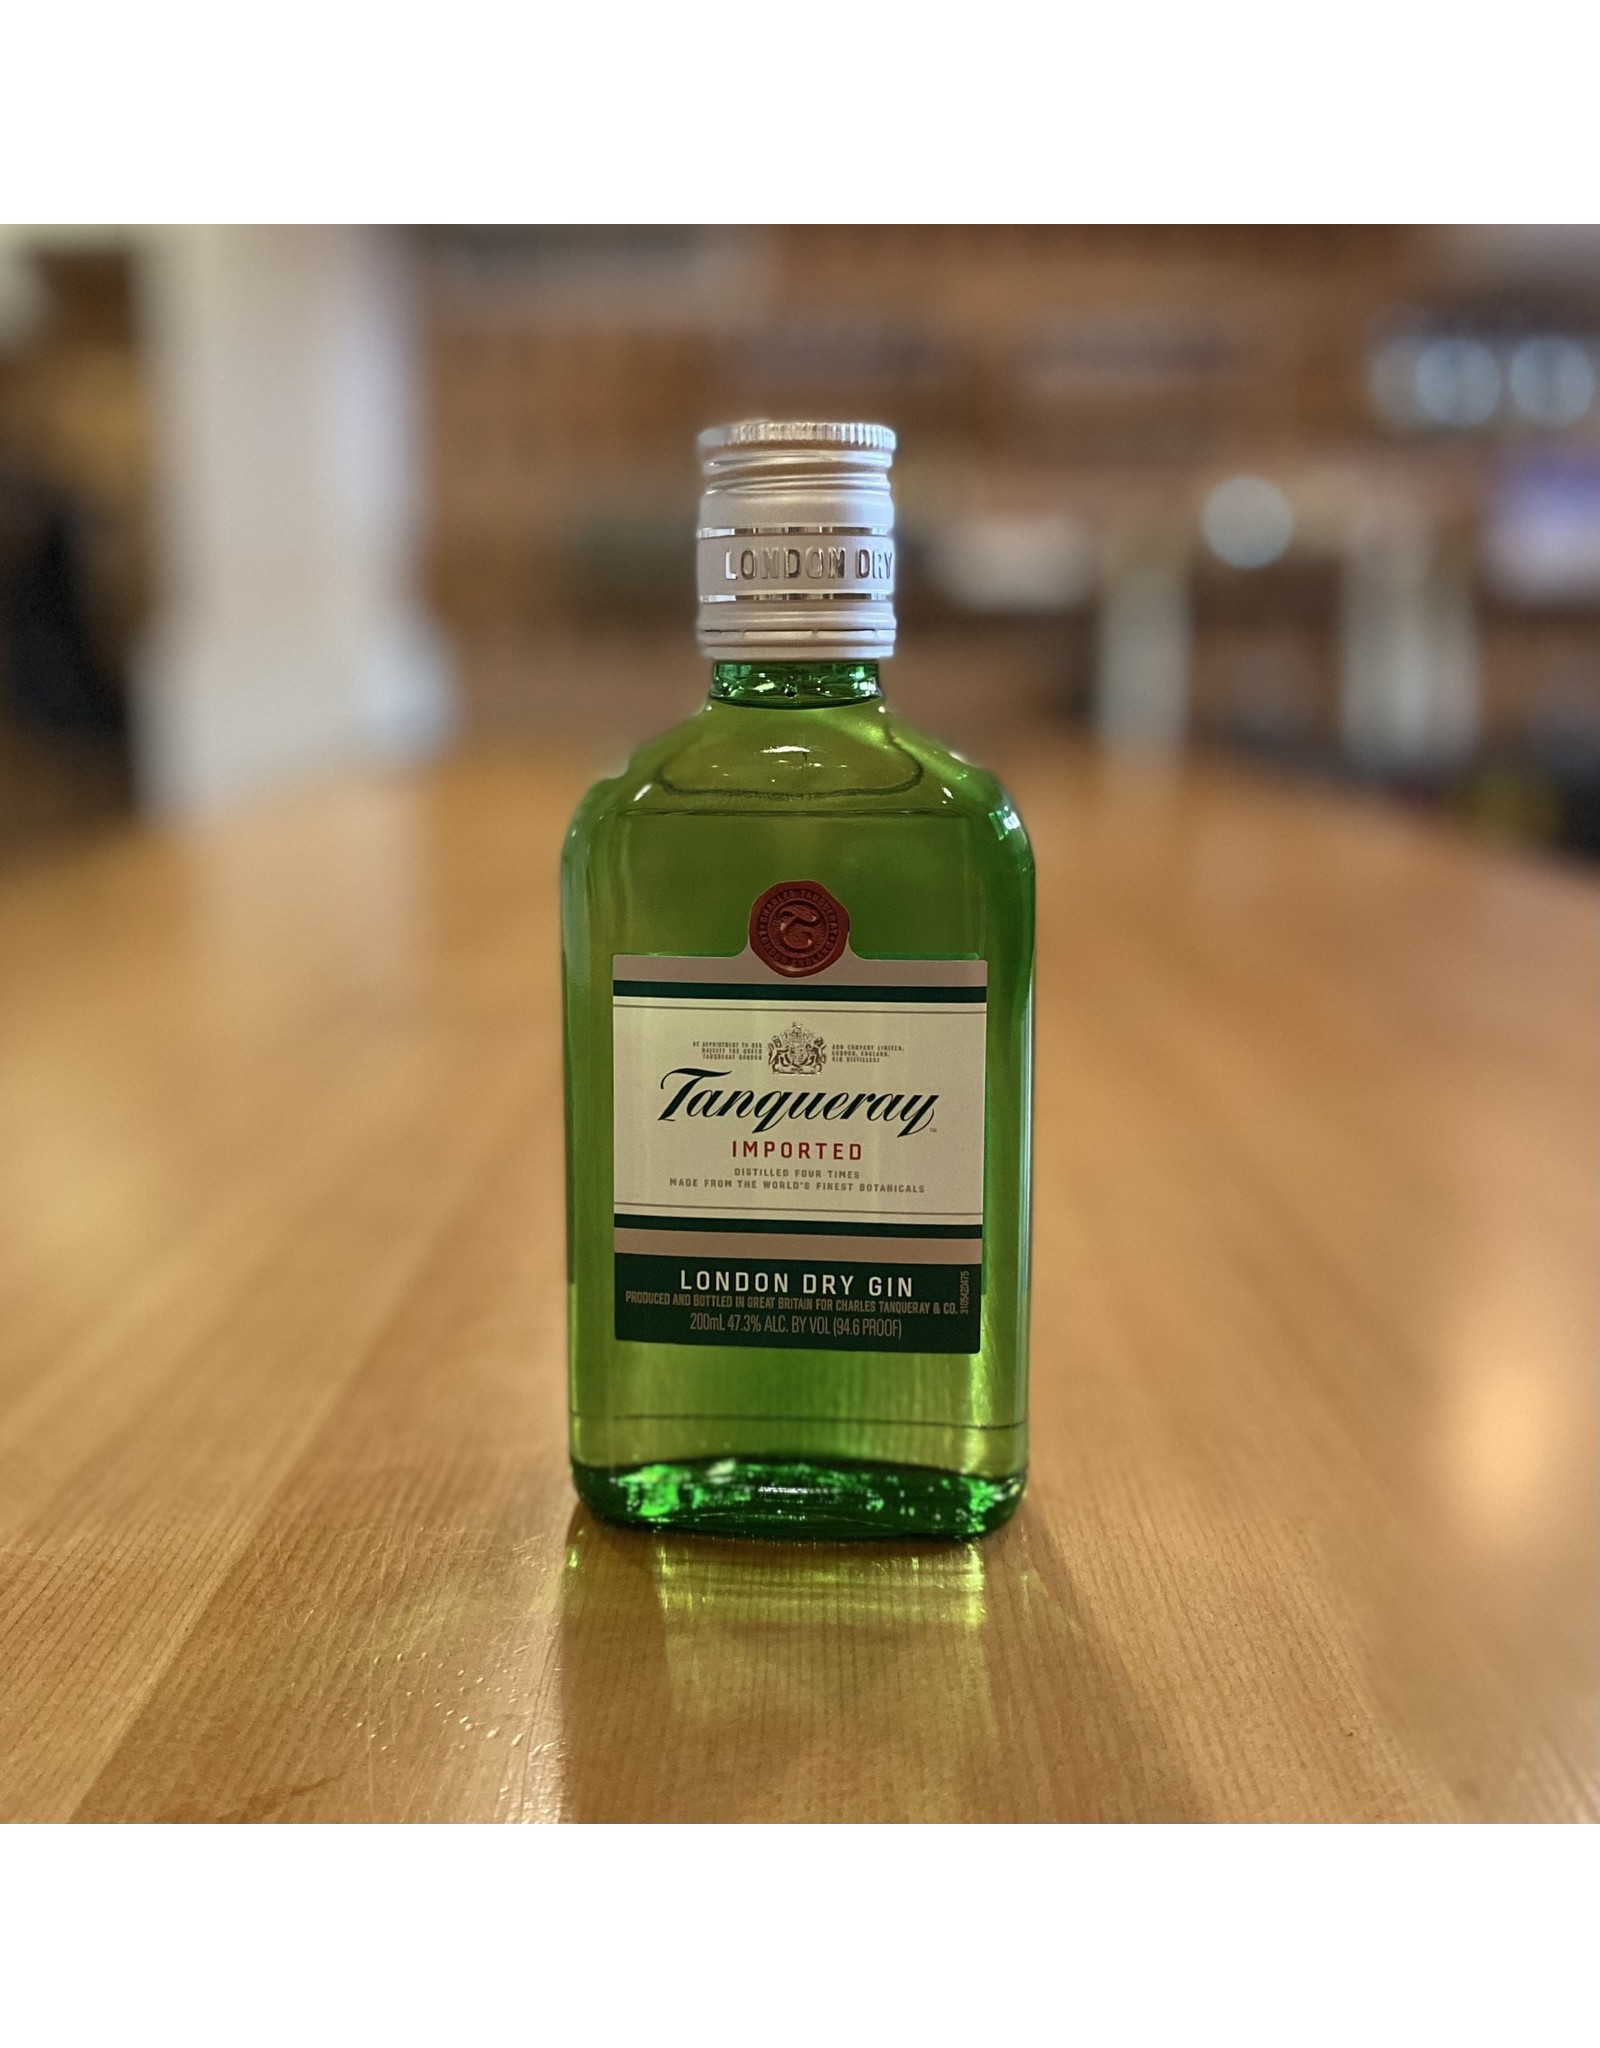 Tanqueray London Dry Gin 200ml - England